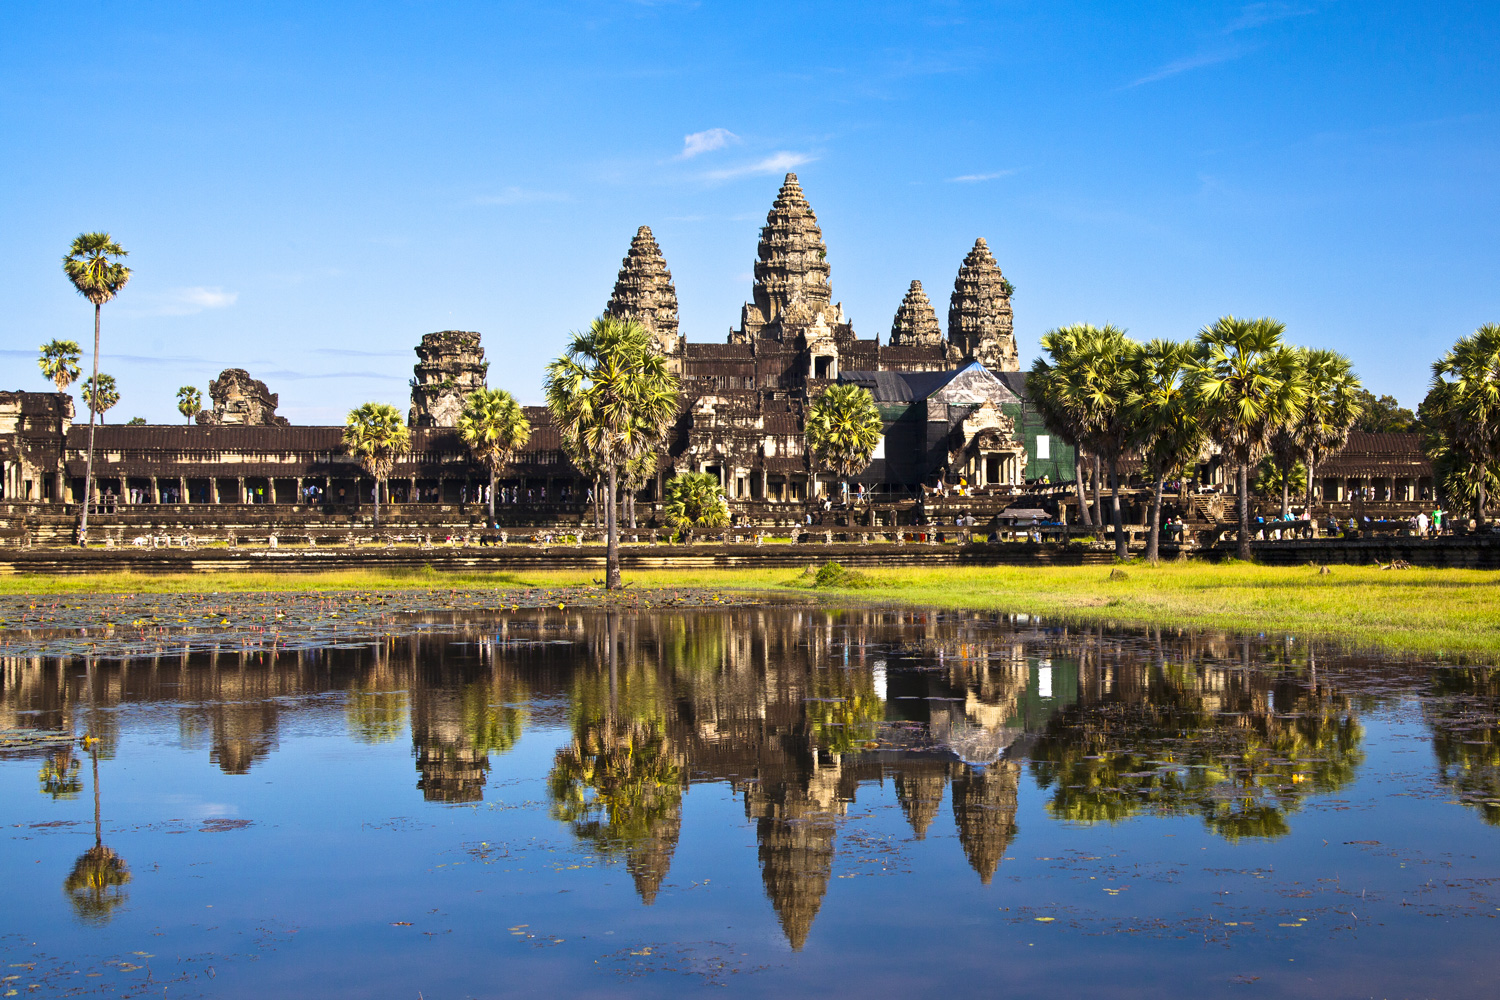 Angkor Wat, Cambodia as seen from across the lake